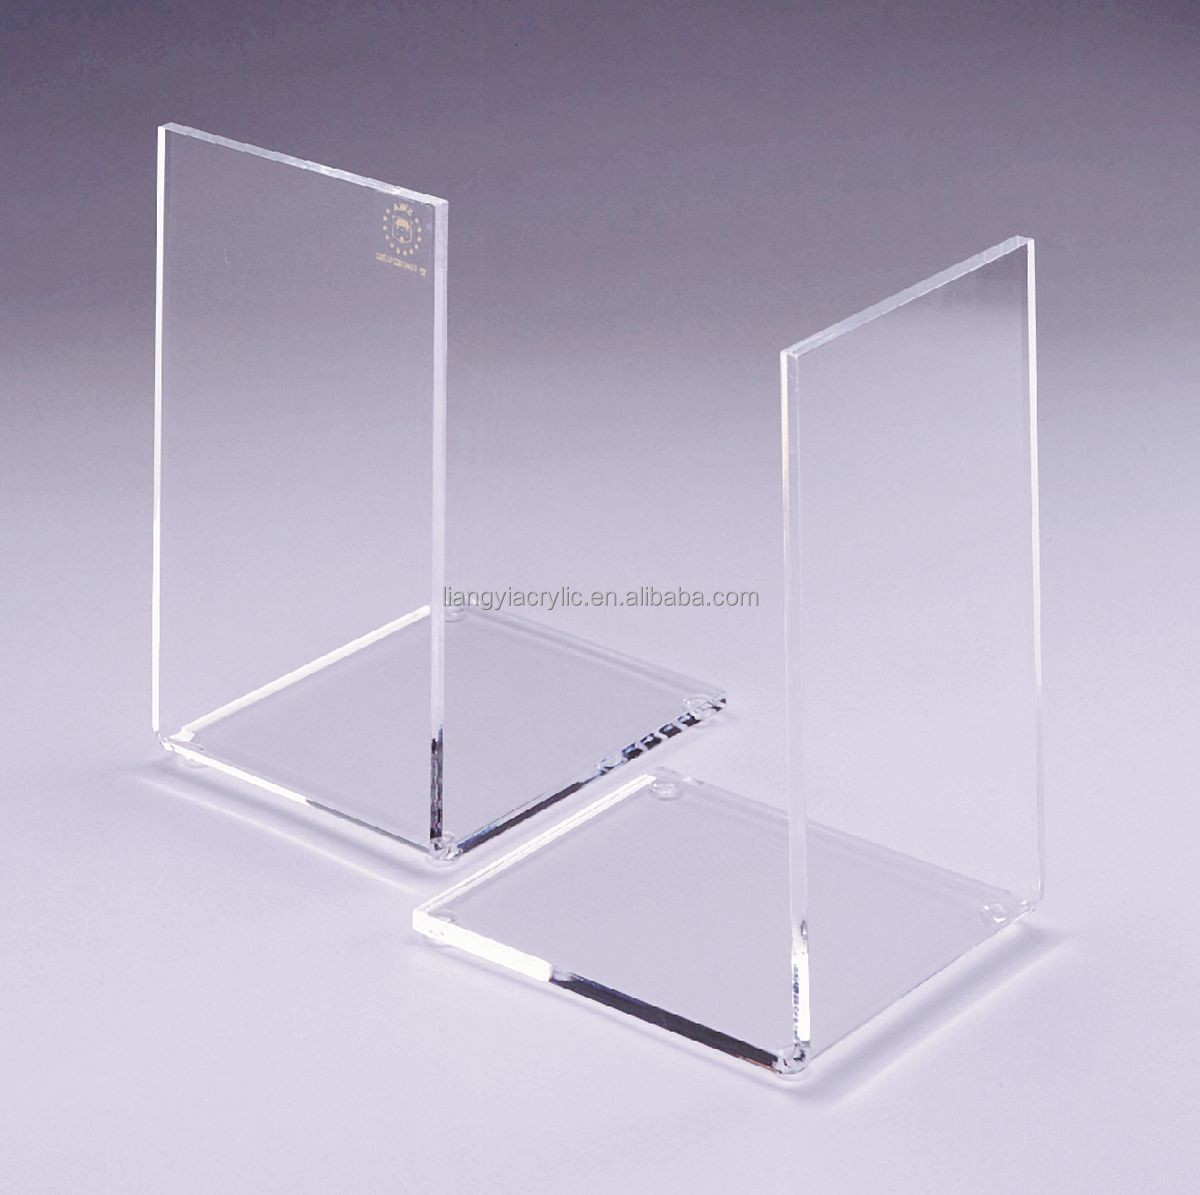 Promotional cheap practical clear acrylic bookends